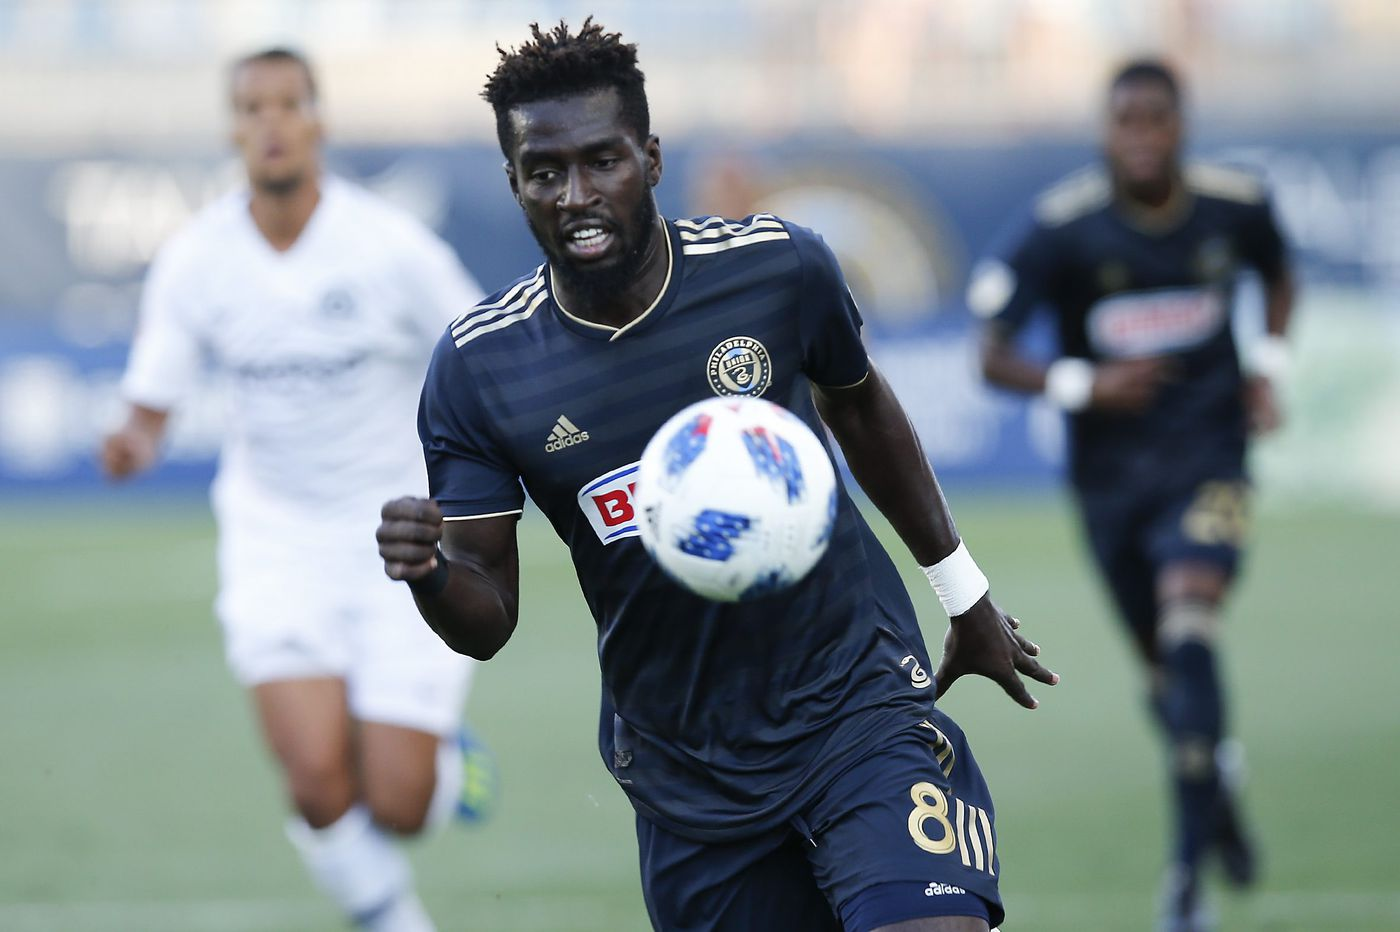 Homegrown product Derrick Jones shows growth in Union's friendly win over Eintracht Frankfurt